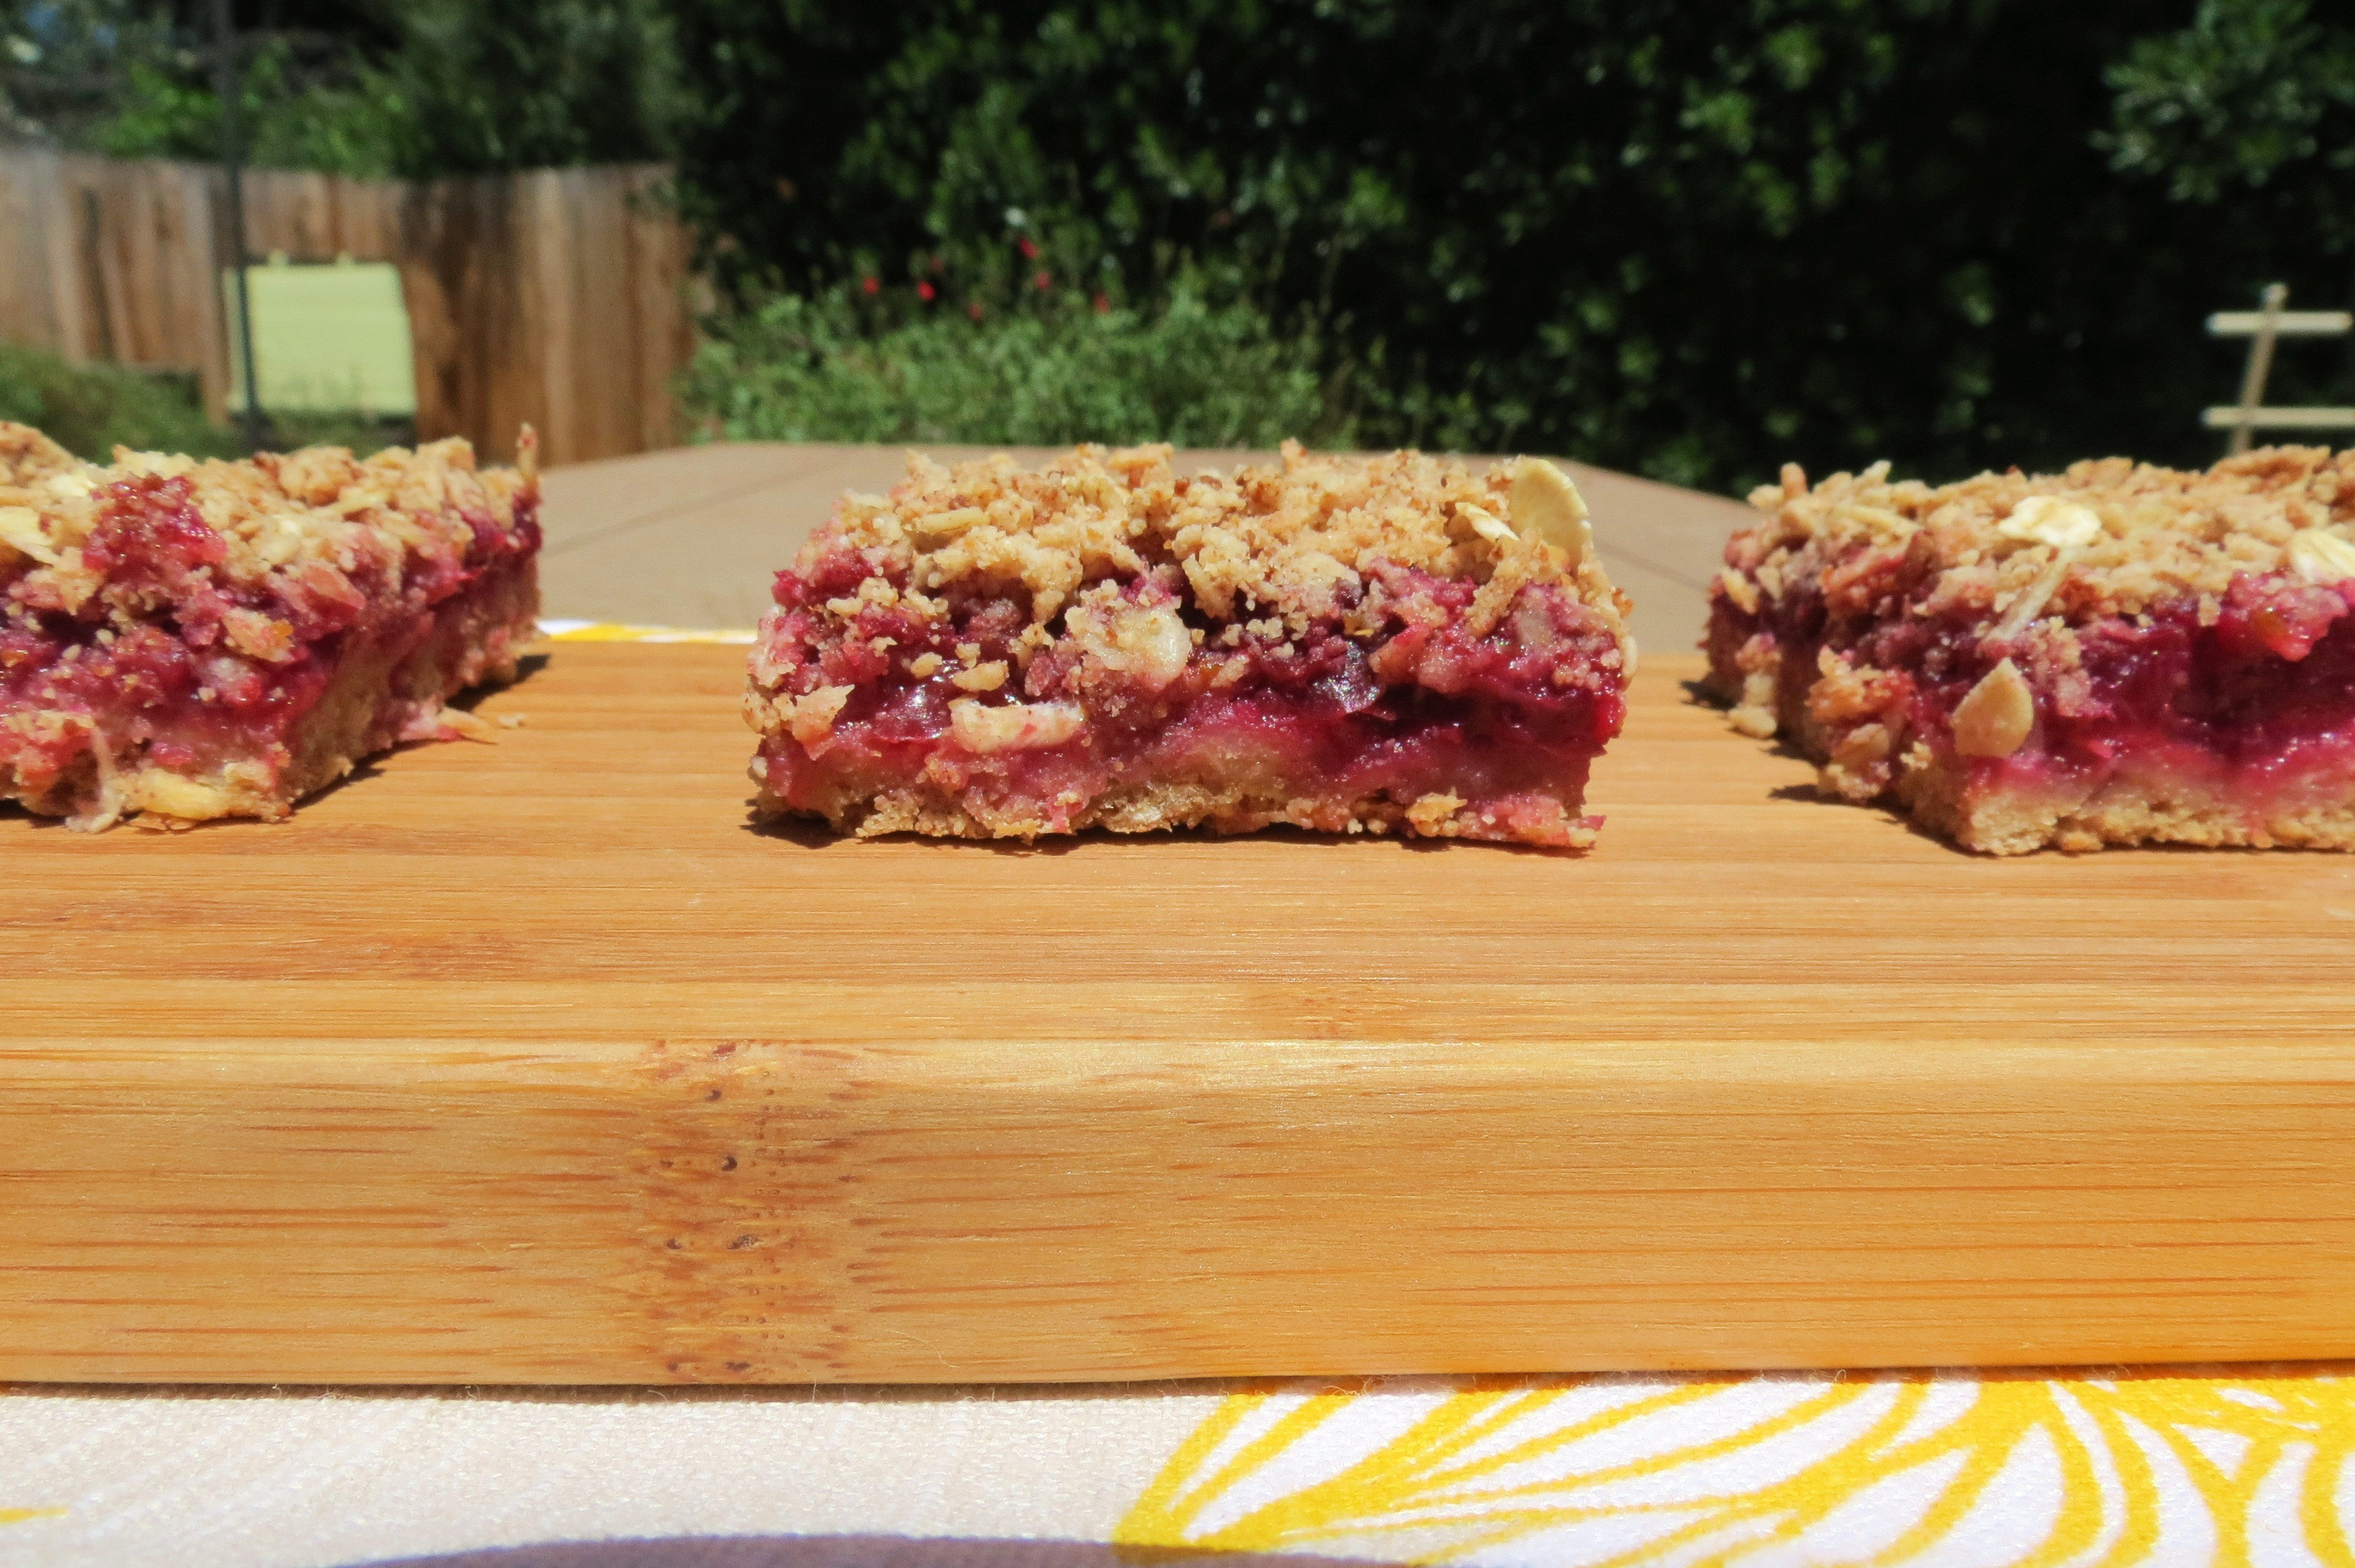 ... coconut almond crumble. Tastes like your biting into a cherry pie